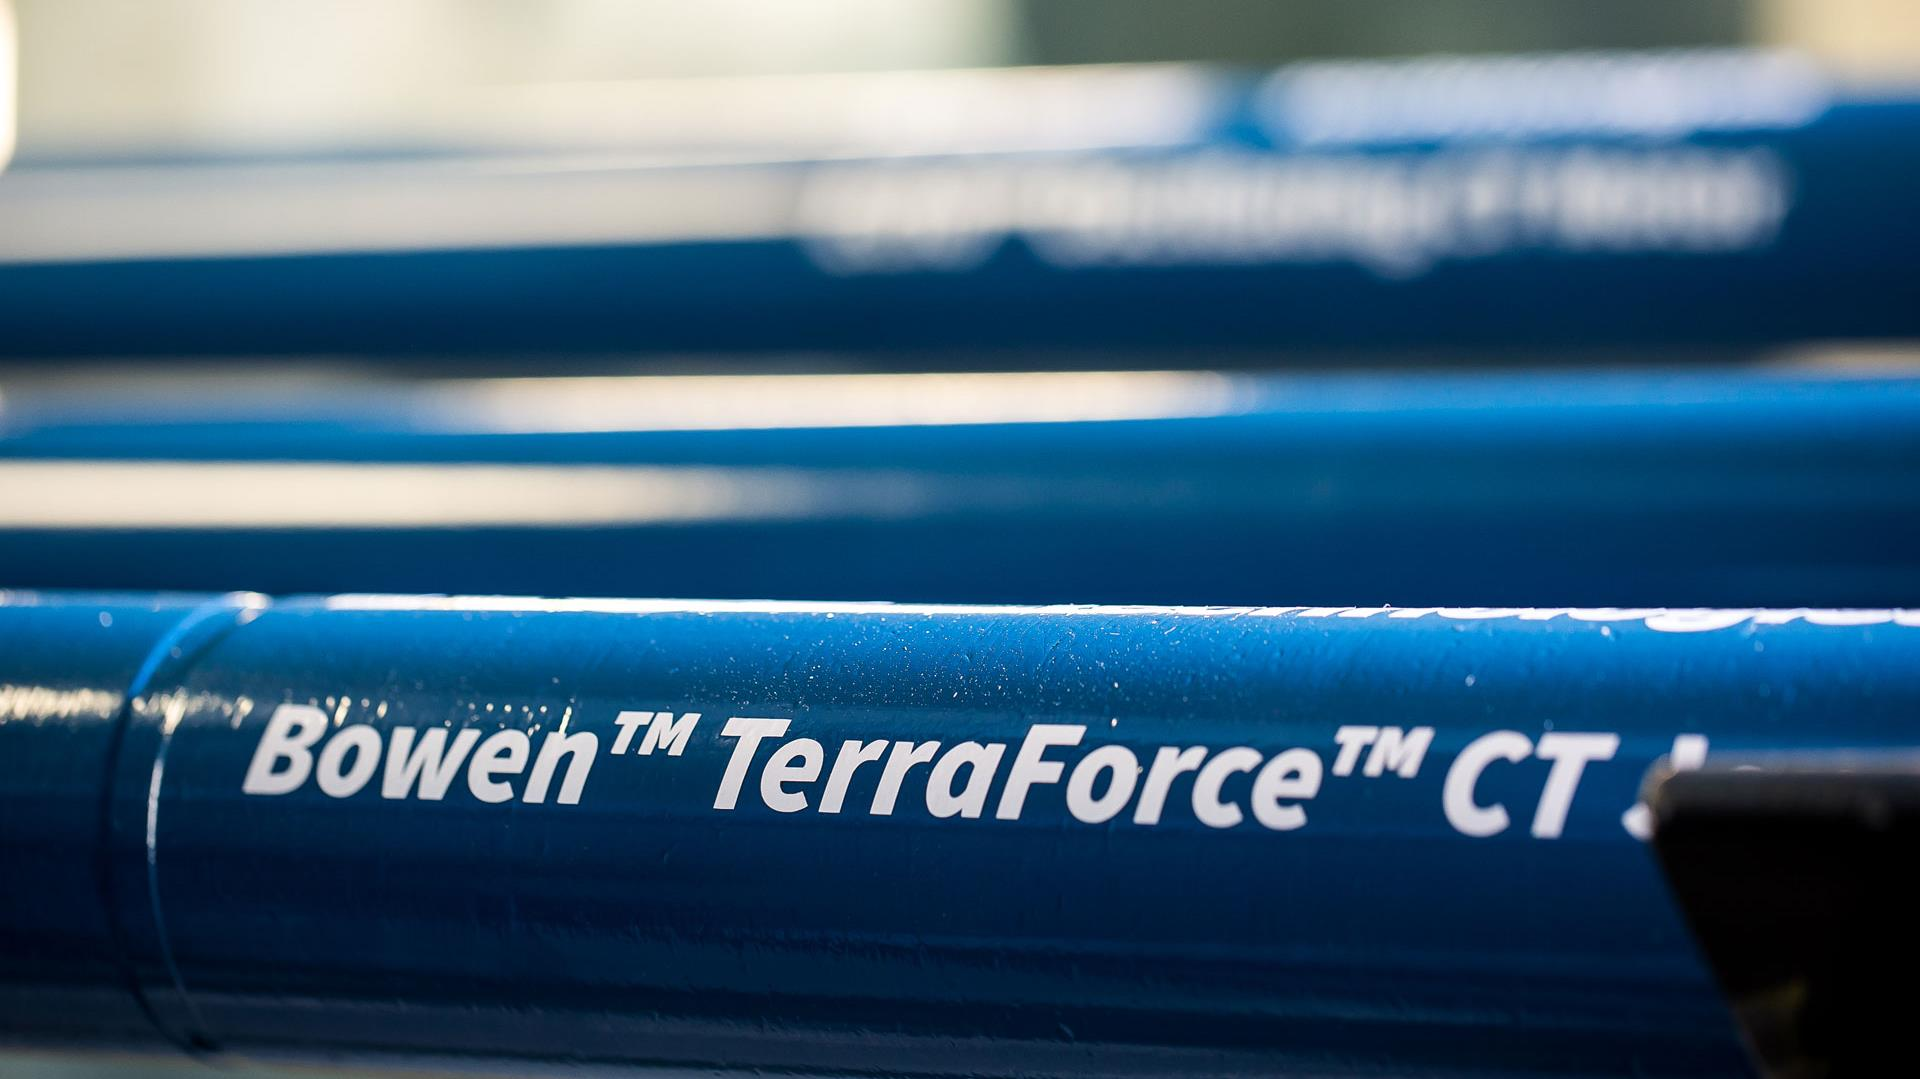 Close up of seveal TerraForce Coiled Tubing Jars, with focus one tubing jar and product name